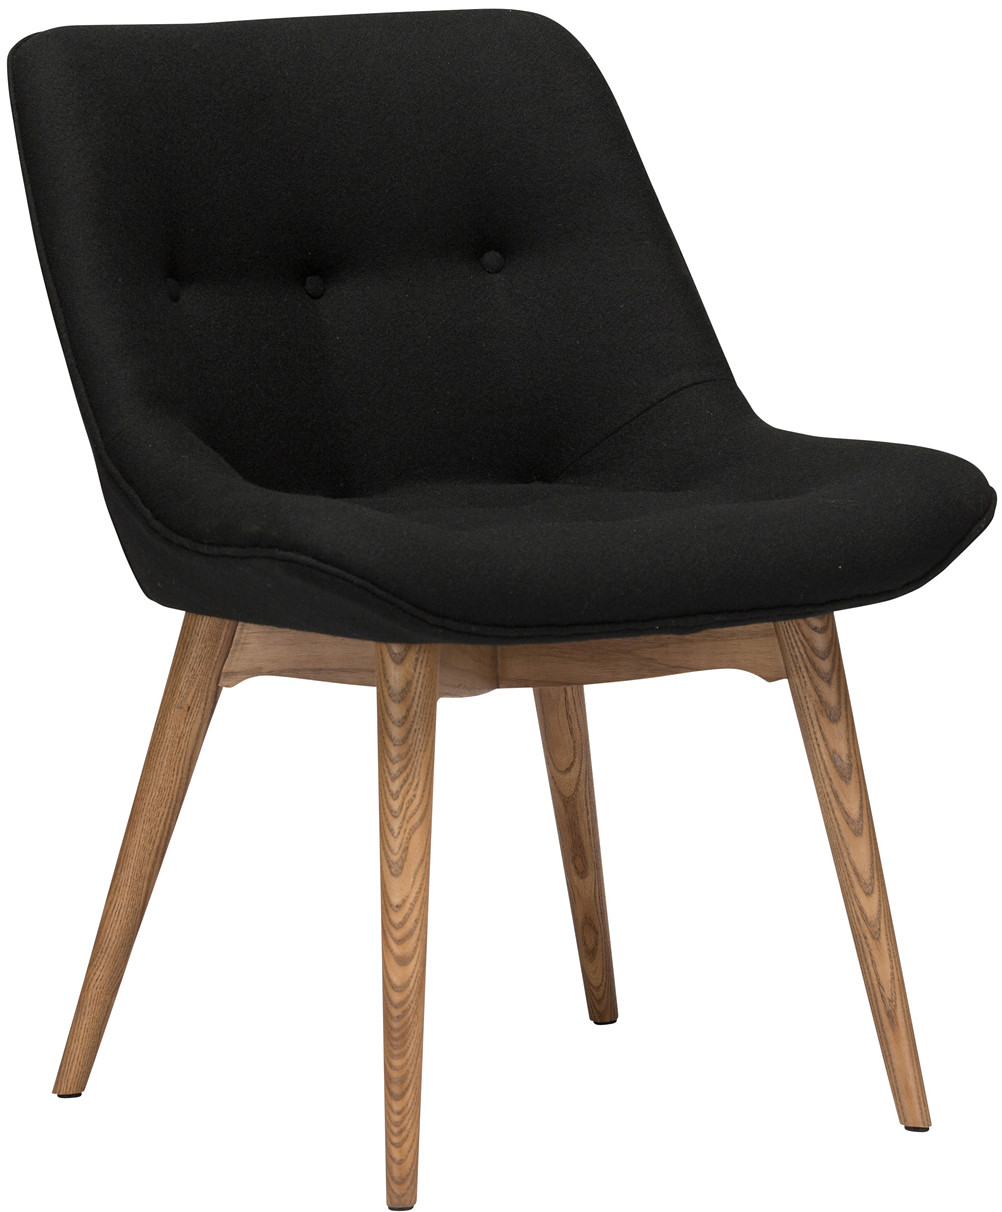 Nuevo Brie Dining Chair Black